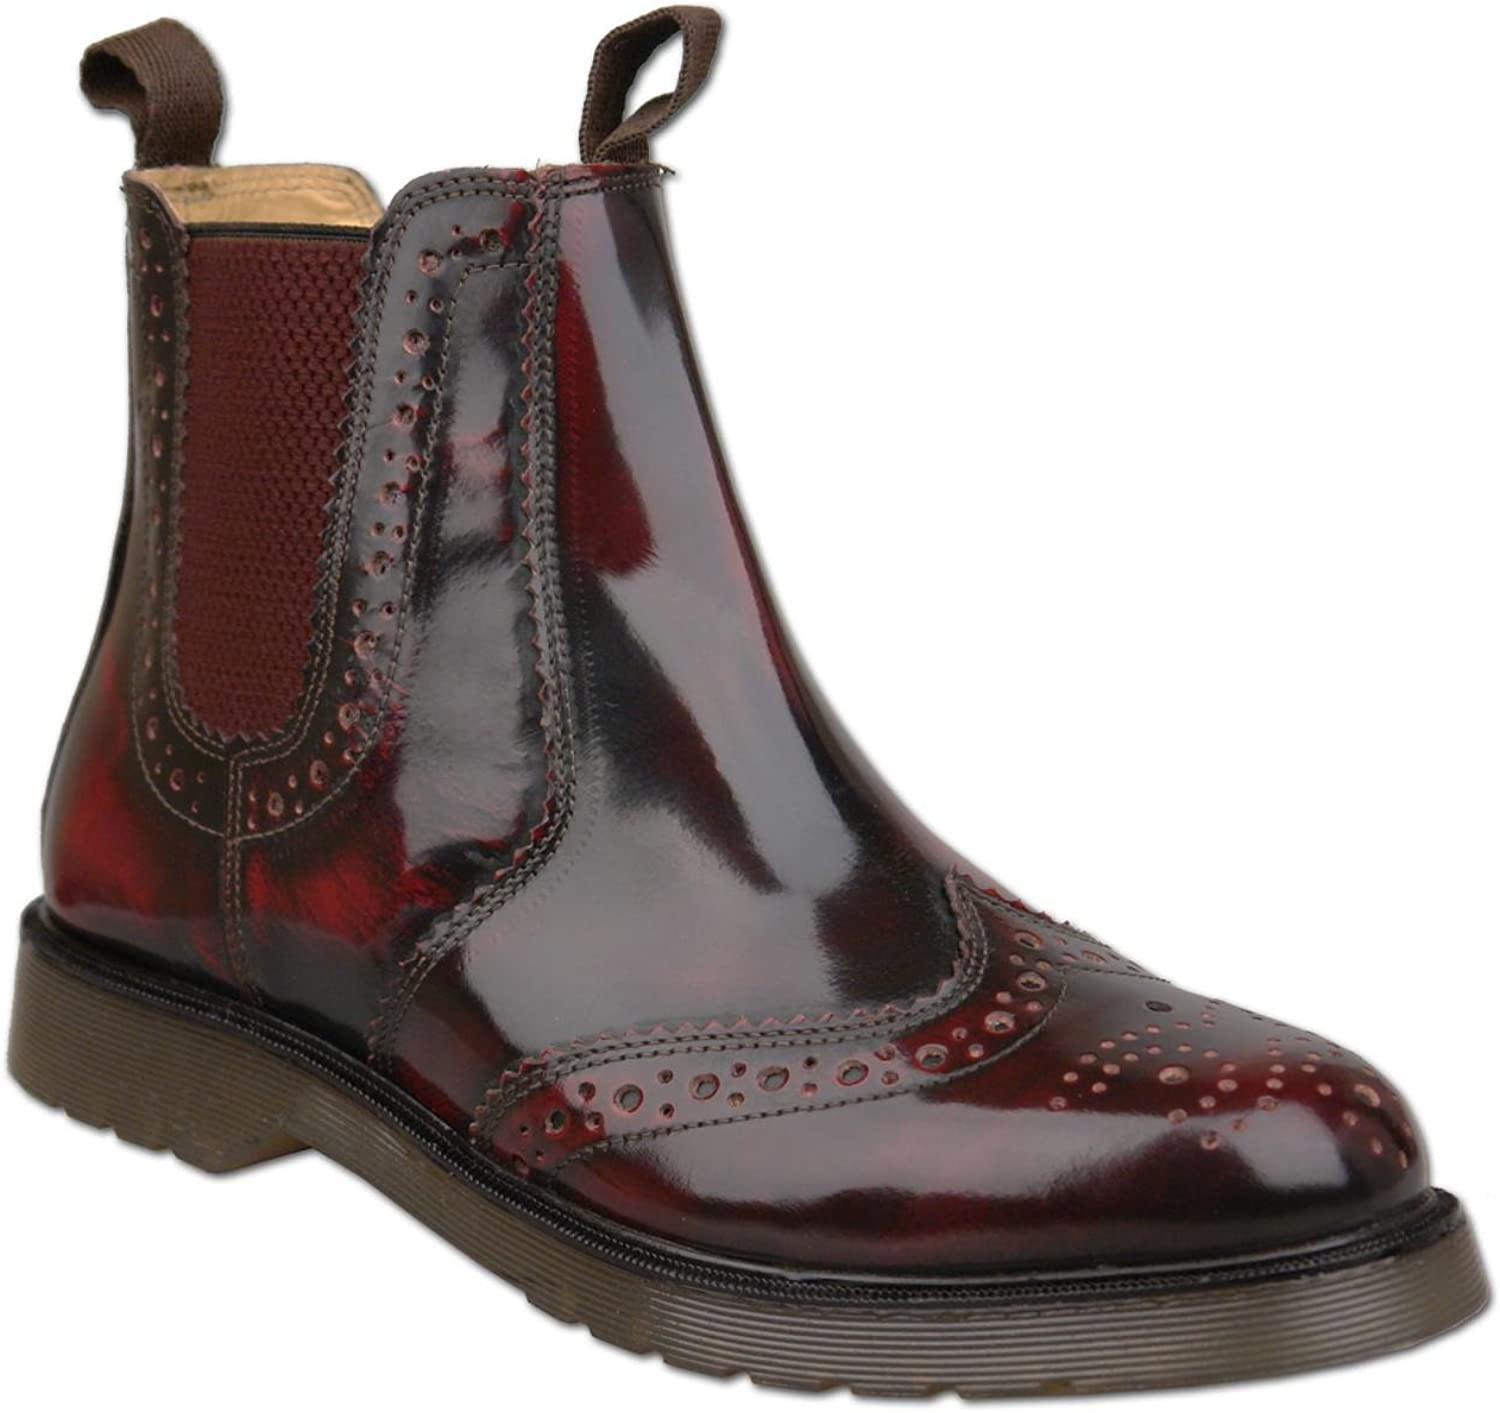 TSG PATERSONS Mens Oxblood Brogue Slip On Chelsea Boots